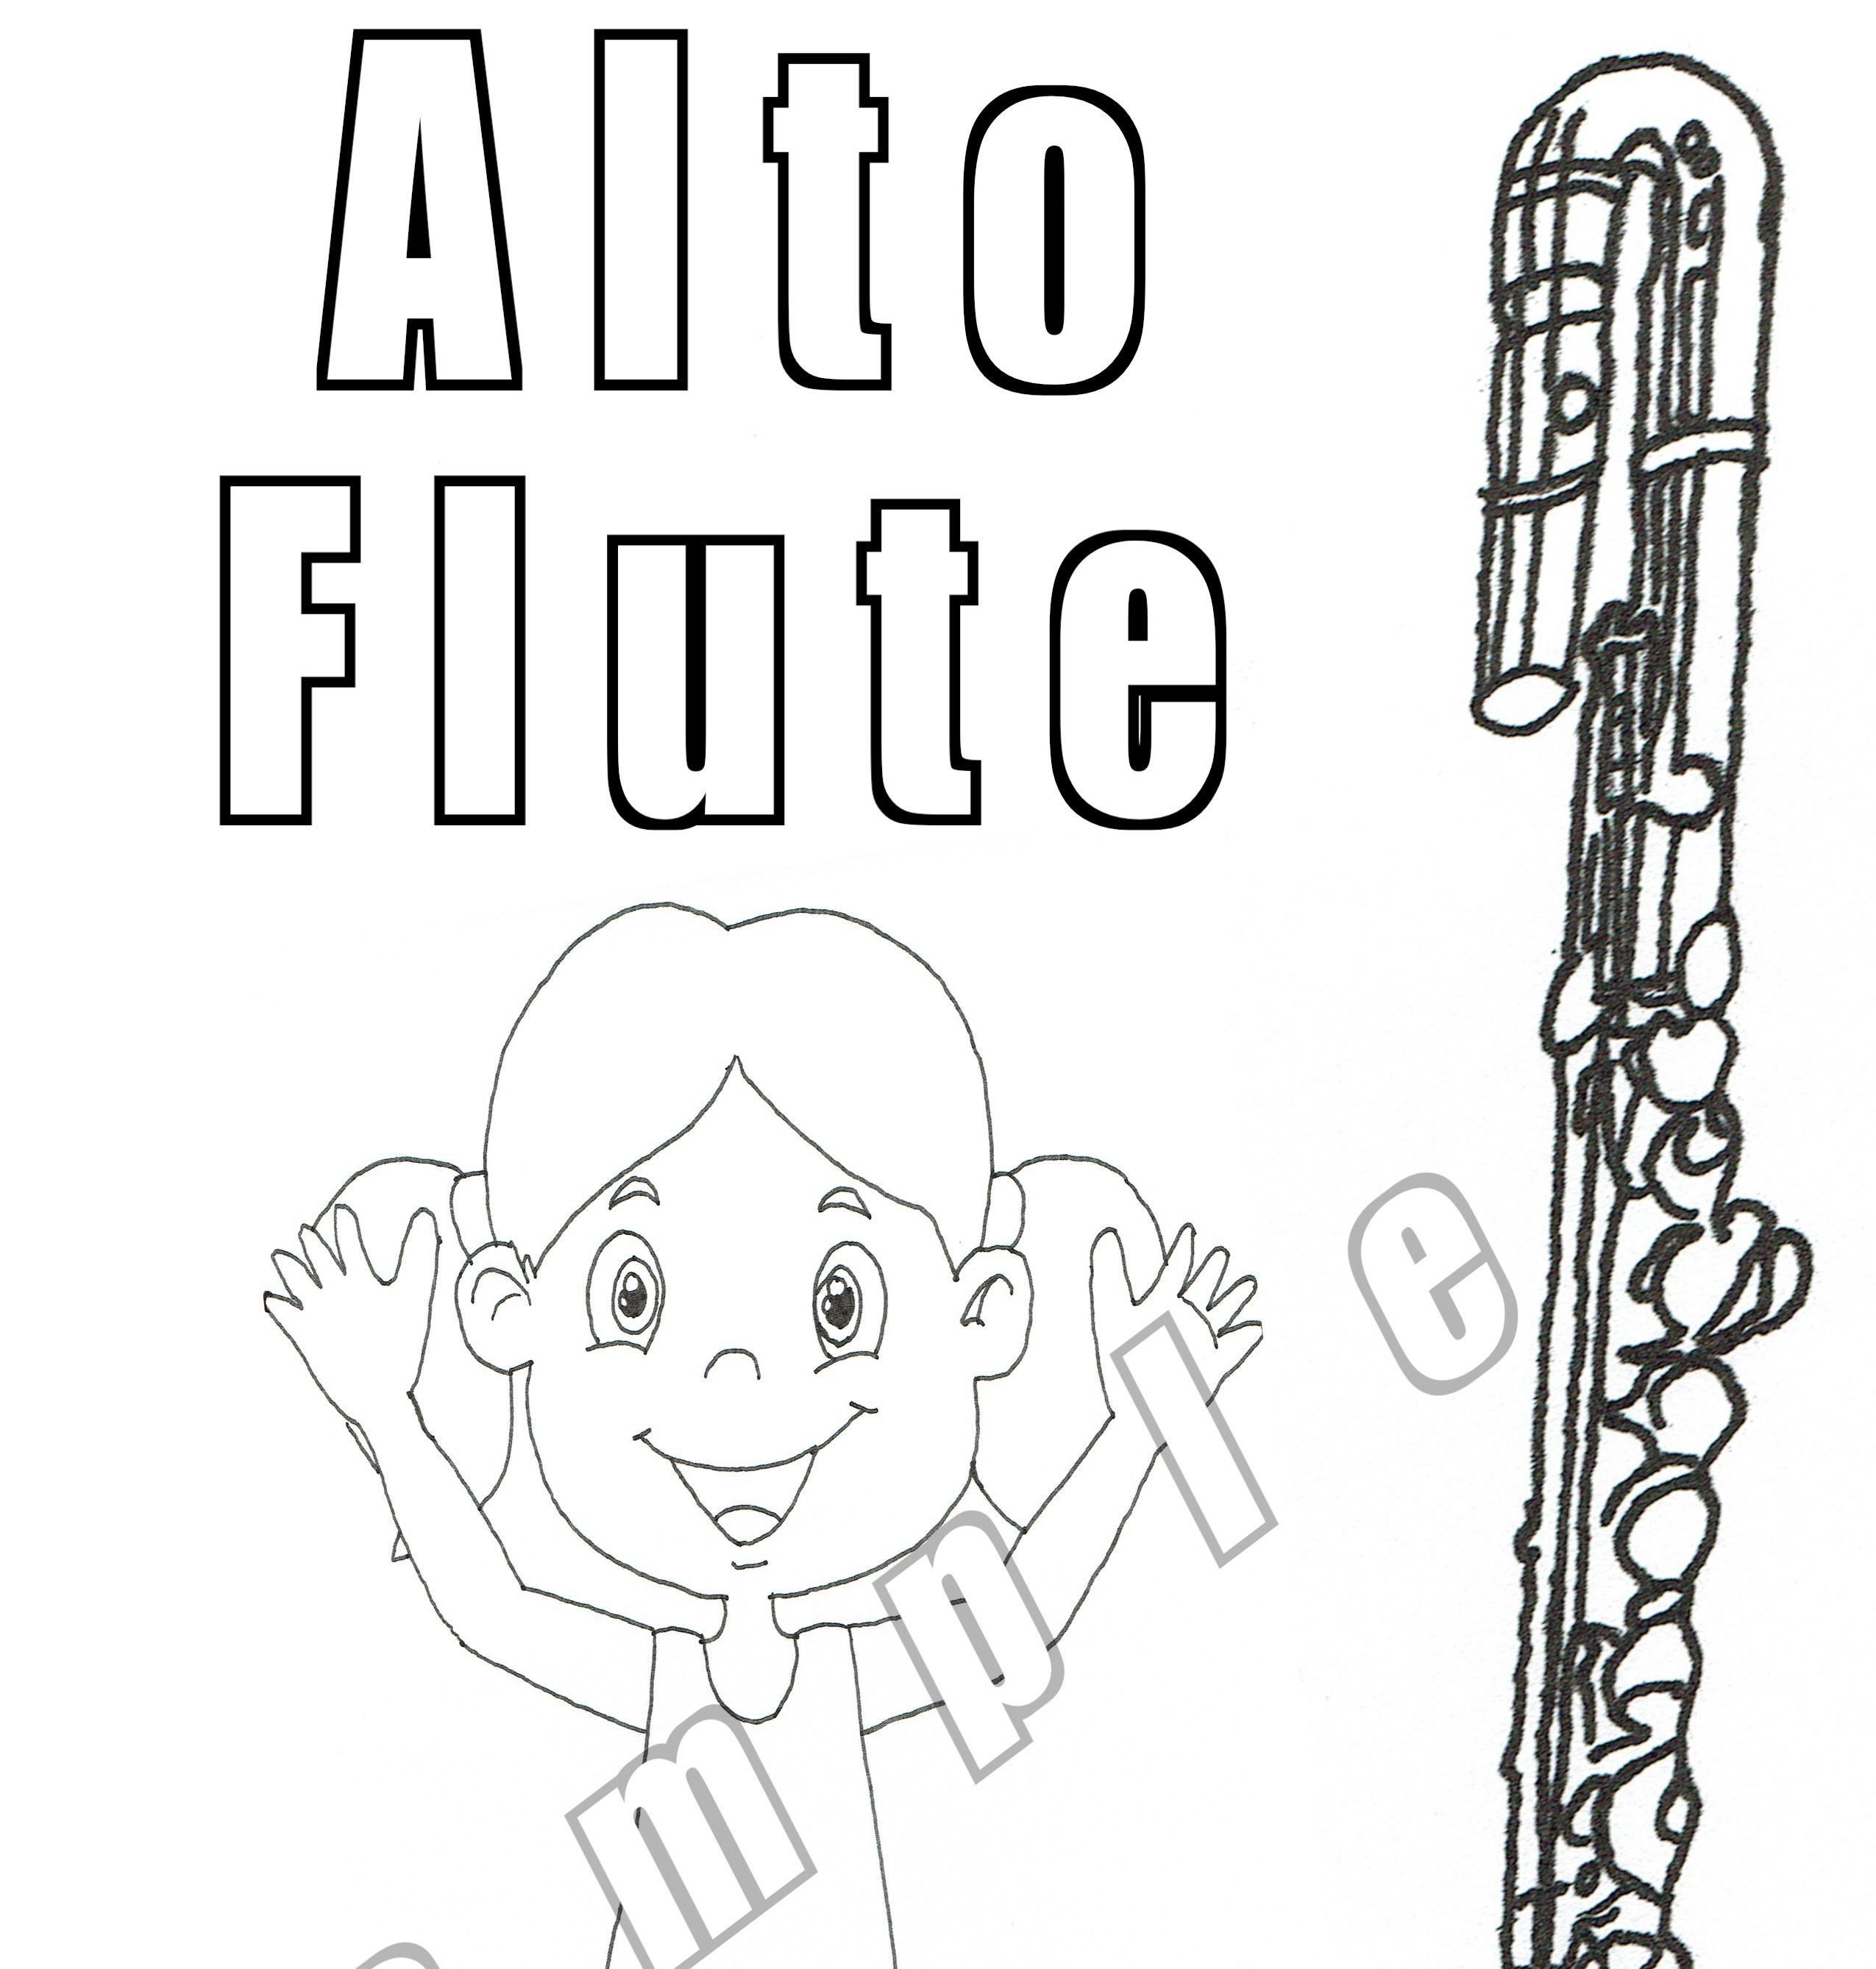 20 Flute Coloring Pages (Digital Download)